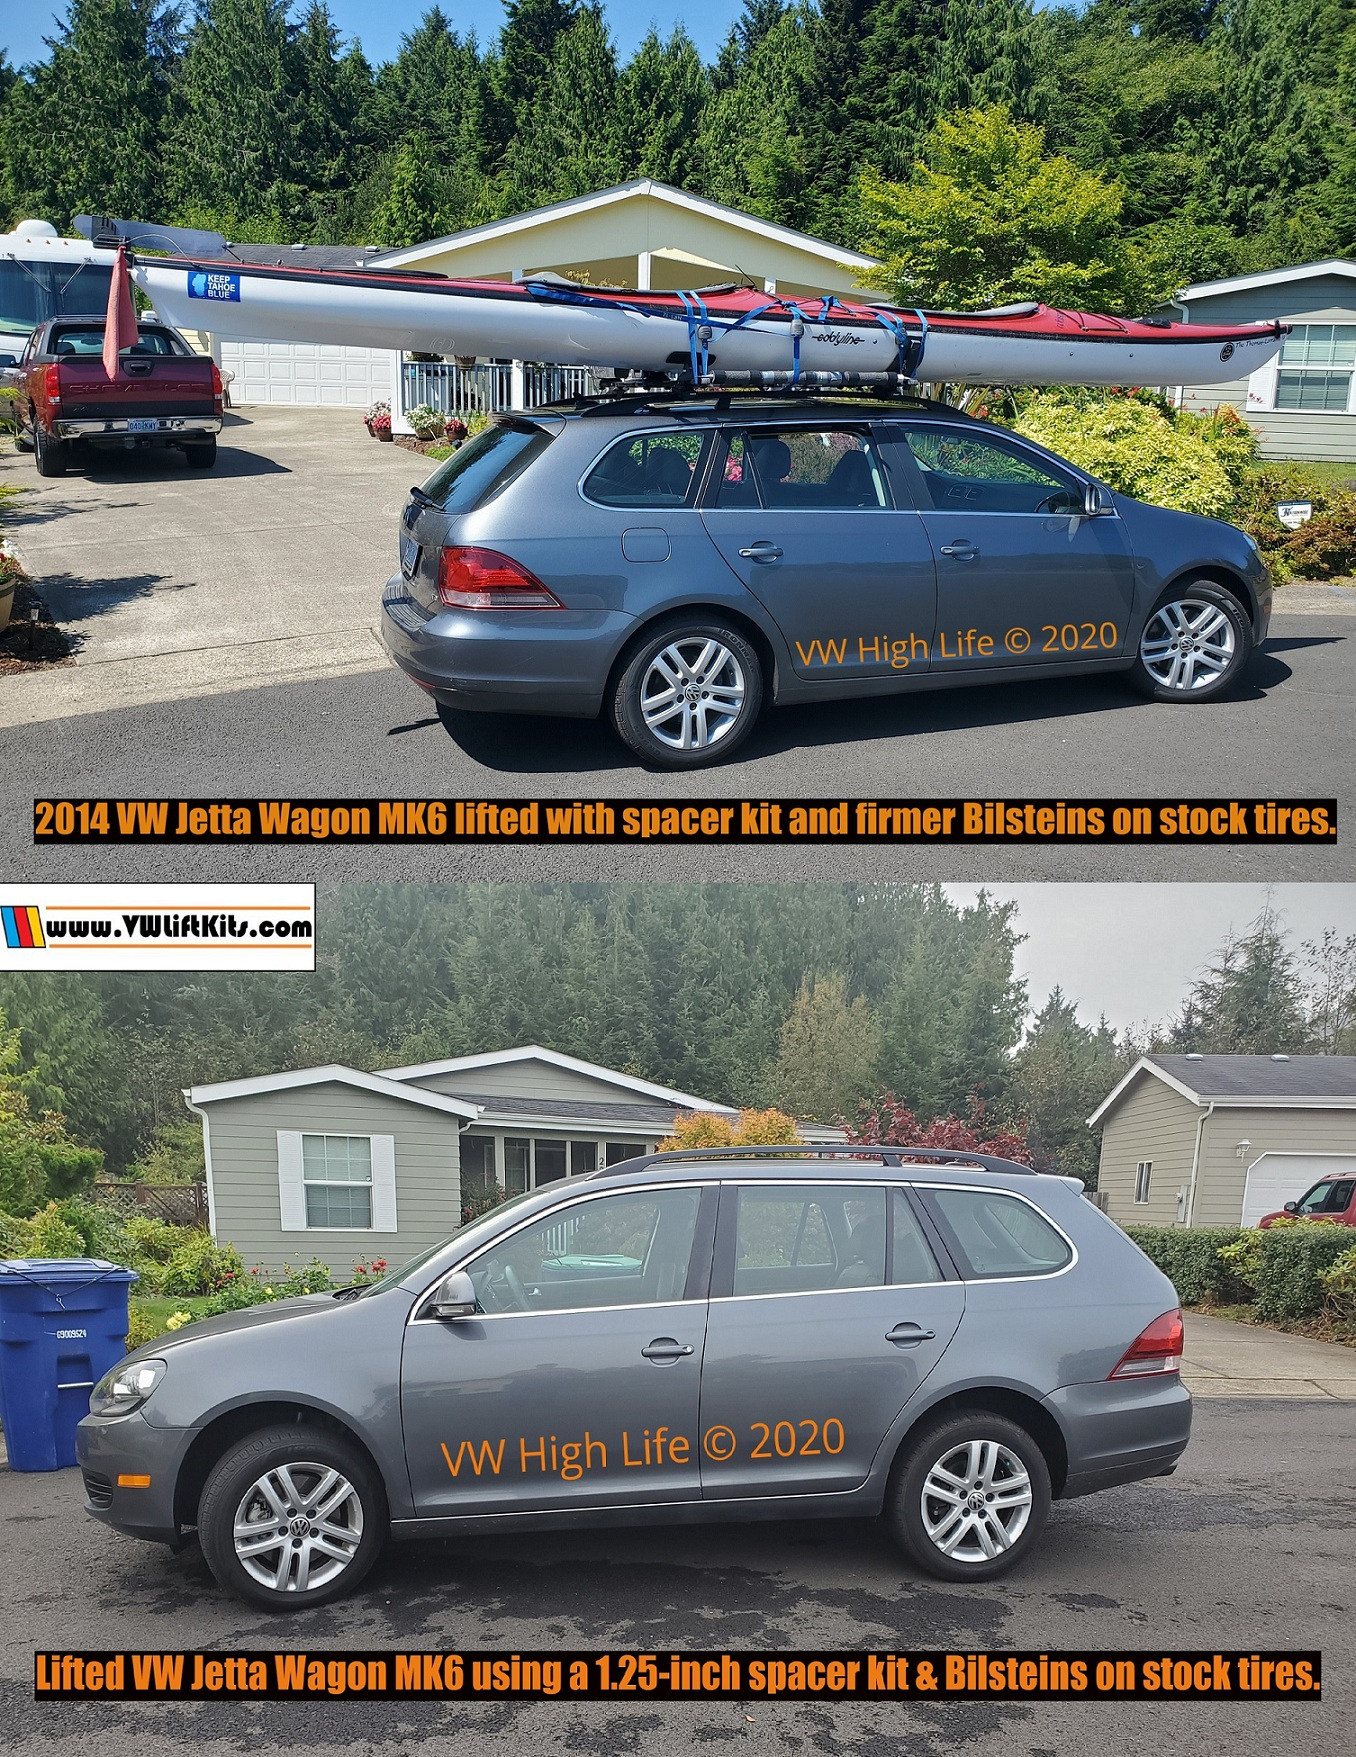 2014 Jetta Wagon lifted properly using a 1.25-inch spacer kit, firmer Bilsteins, new German brand top mounts & bump stops.